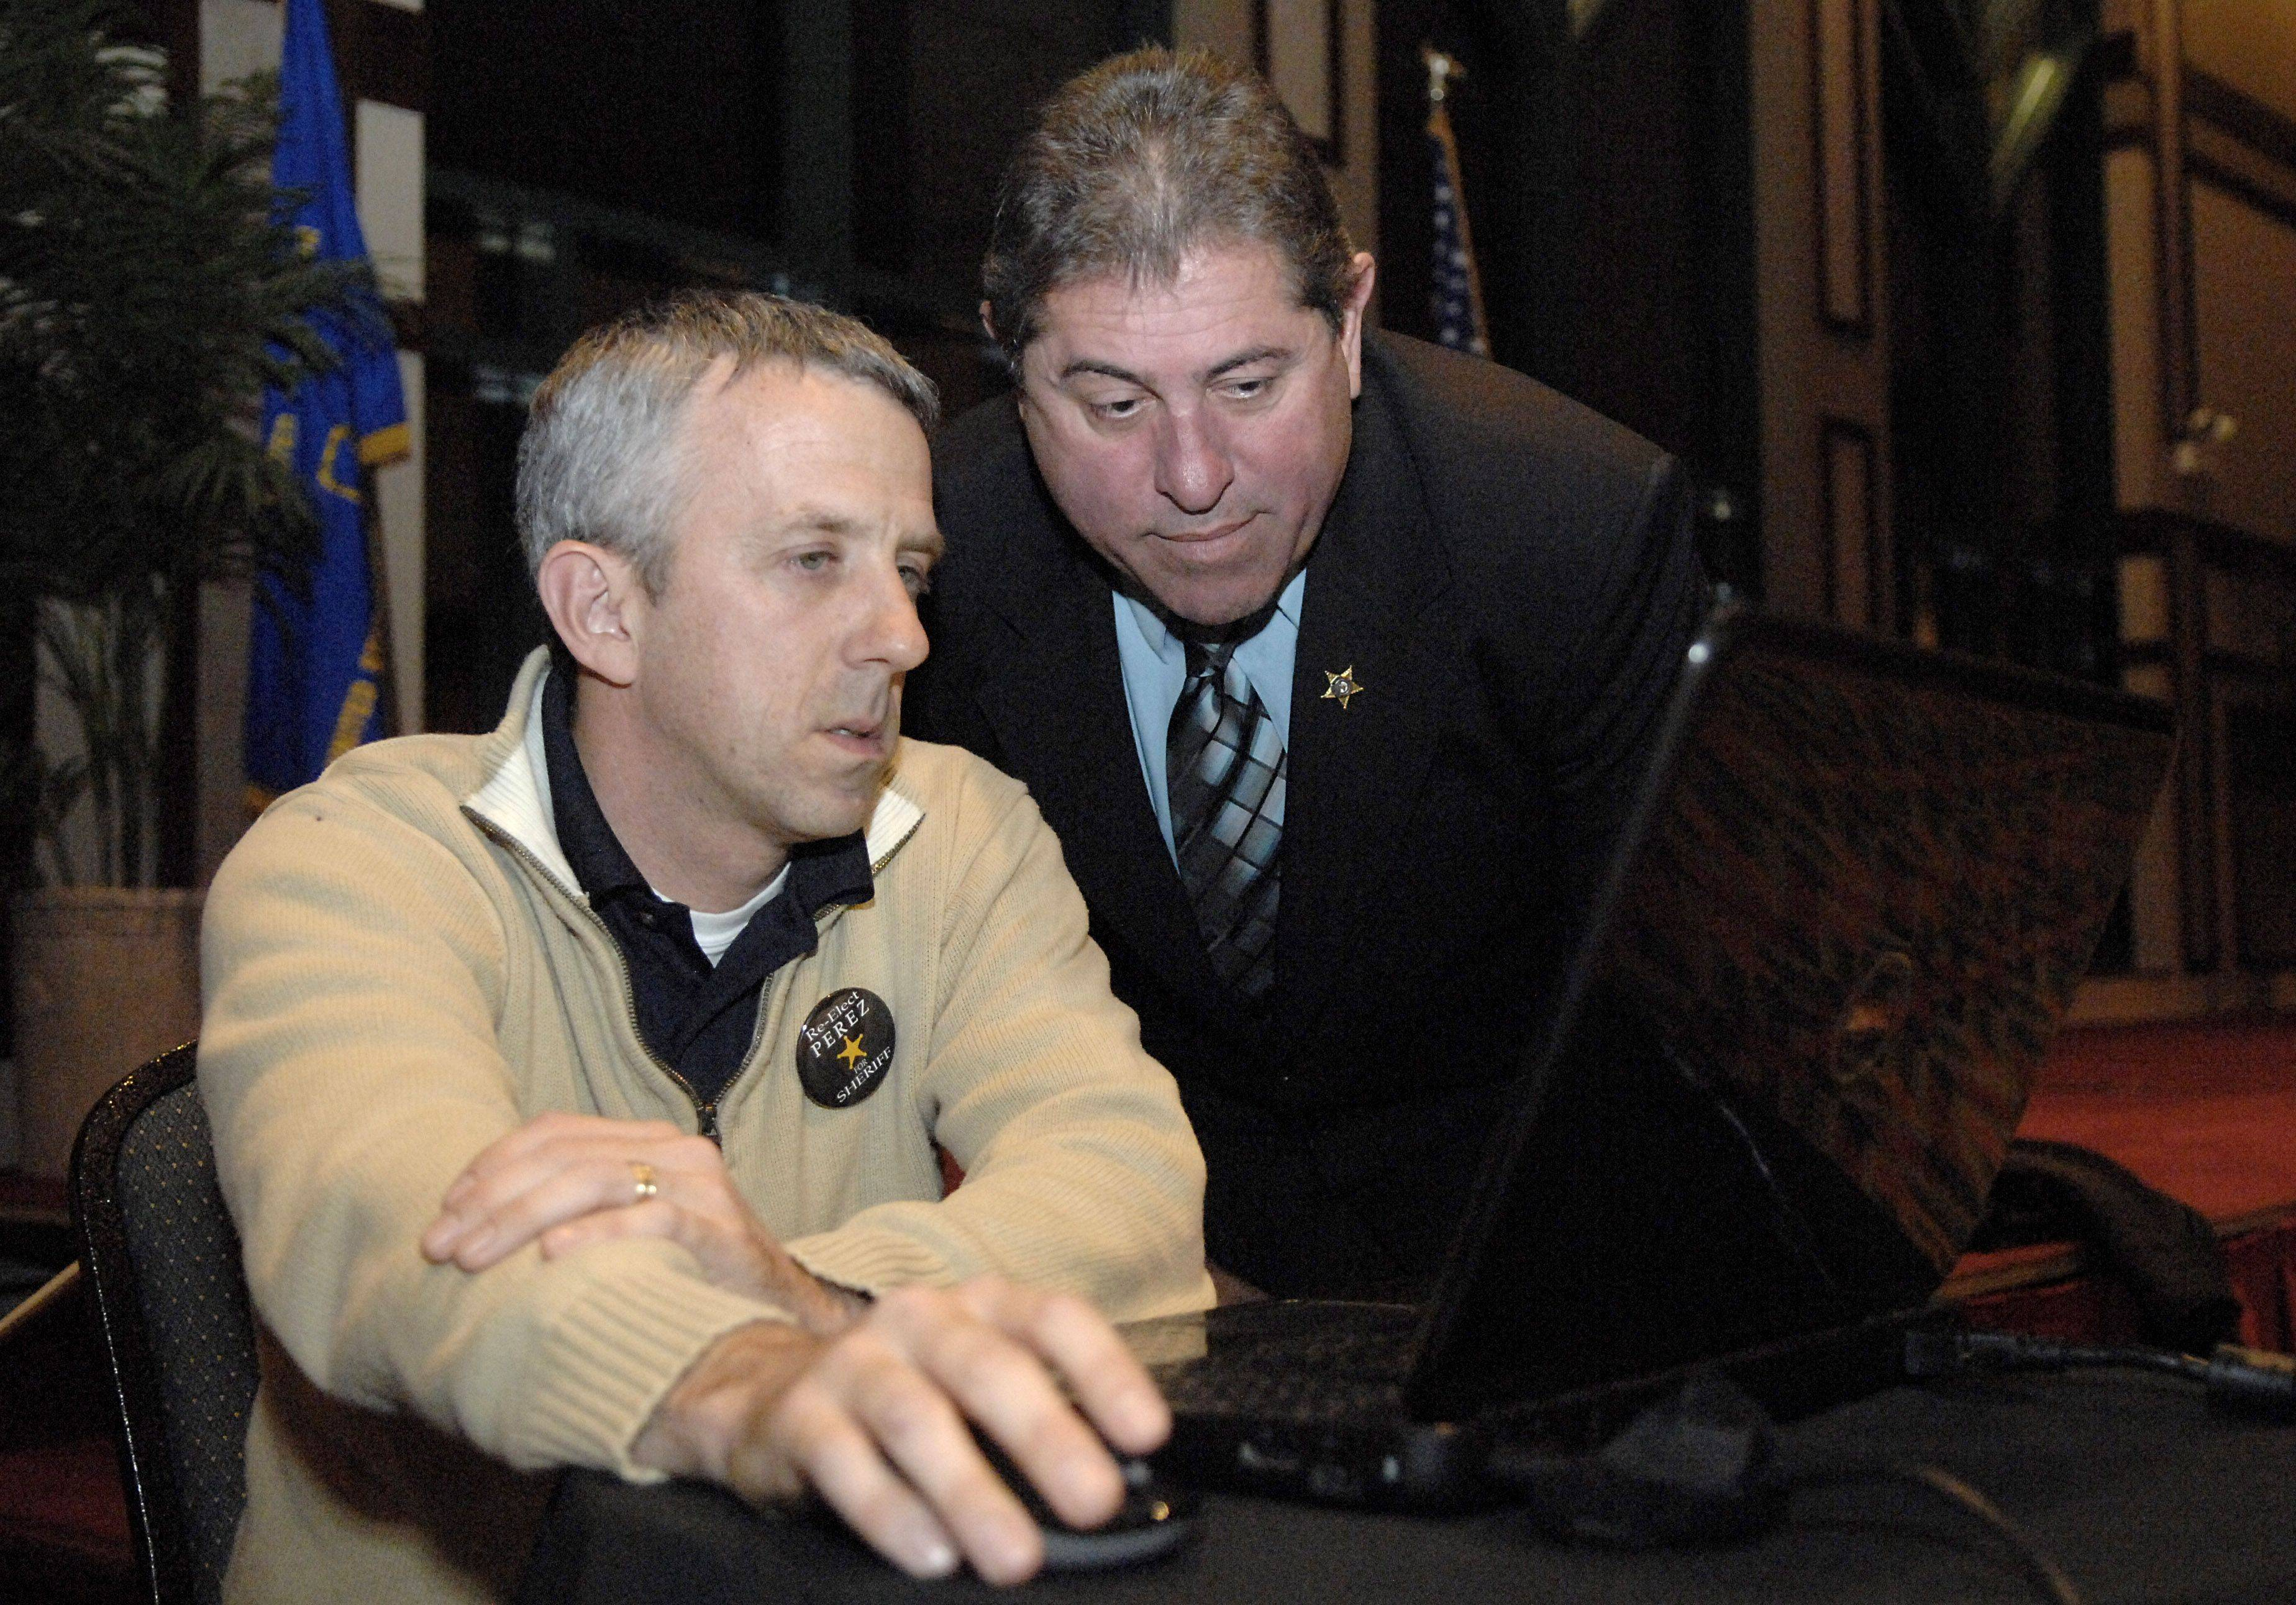 Lt. Pat Gengler and Kane County Sheriff Pat Perez watch the first election results come in Tuesday in Aurora.